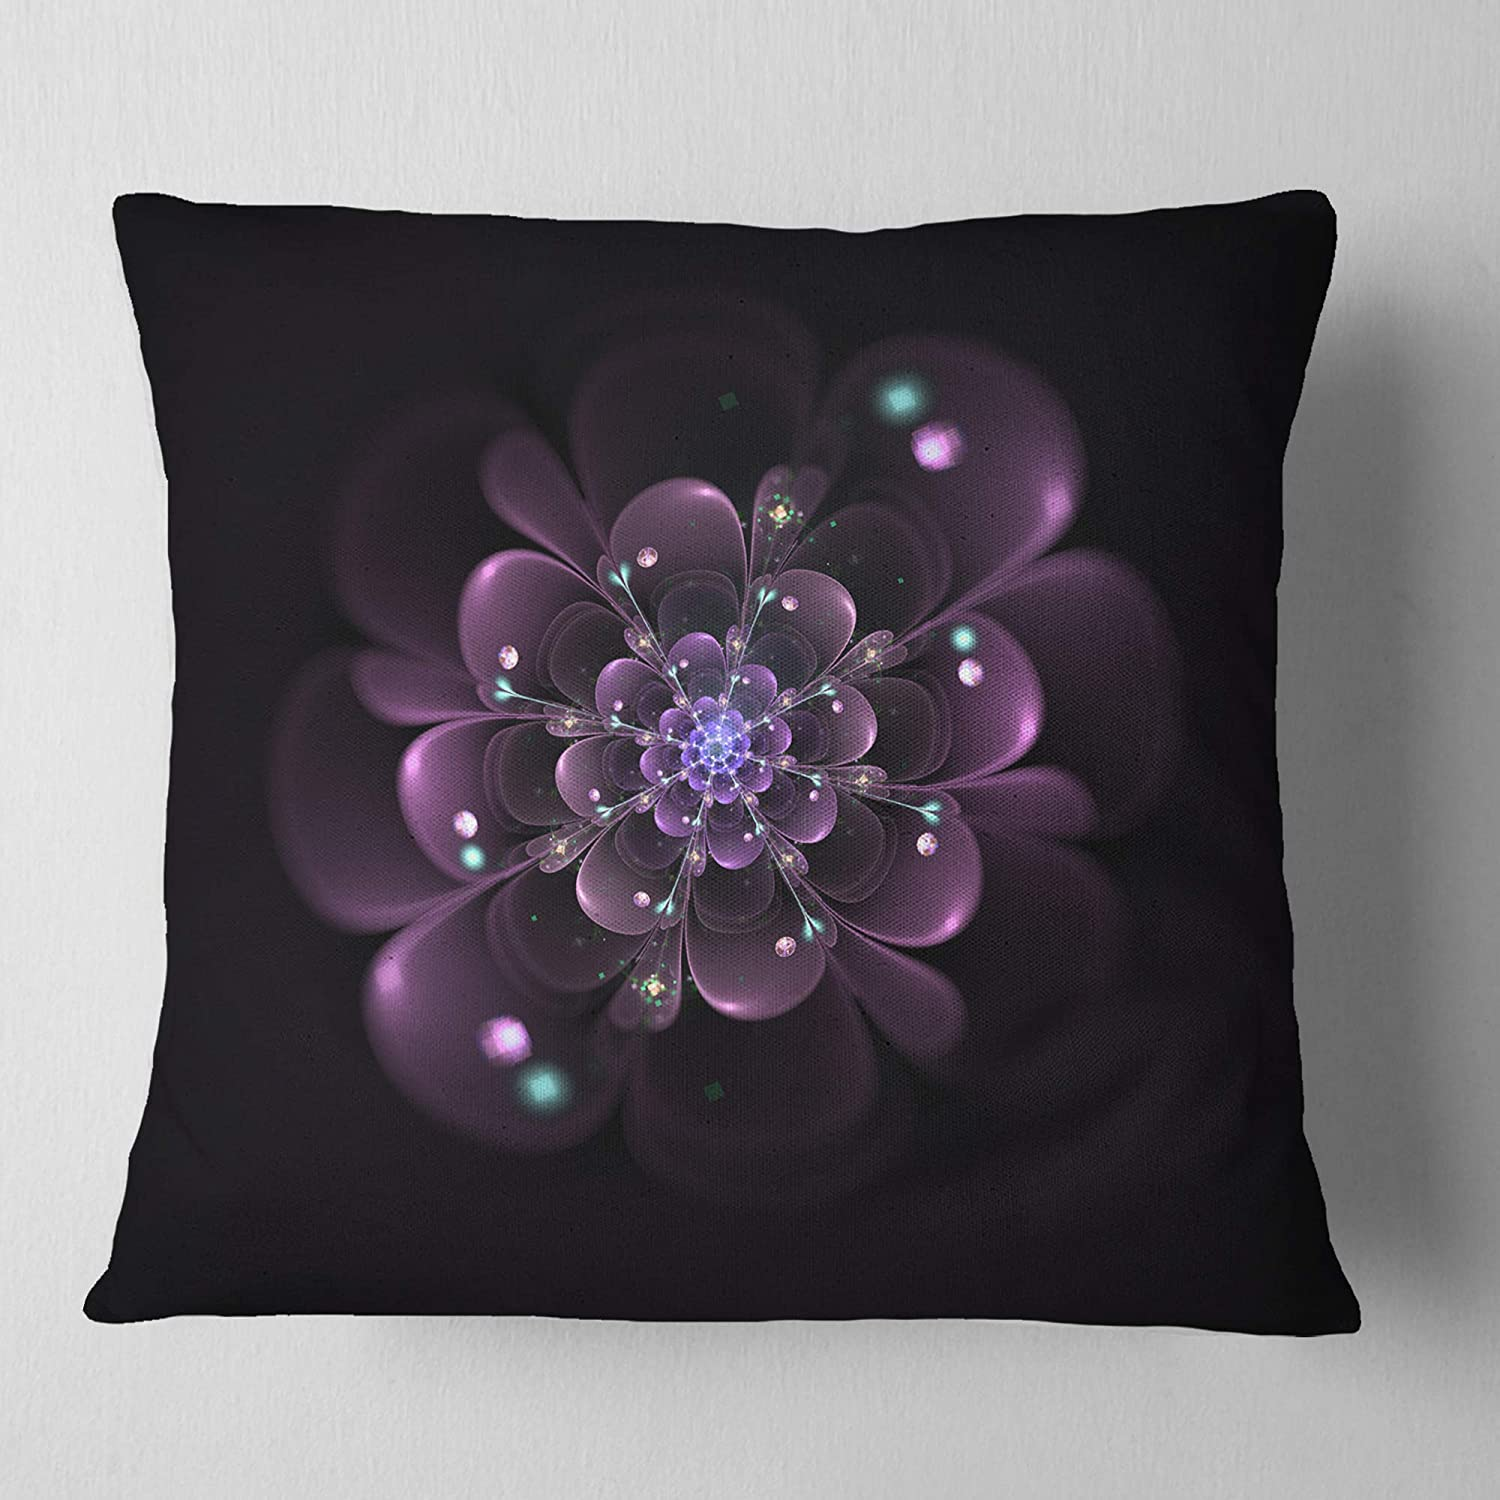 in Sofa Throw Pillow 18 in Designart CU12182-18-18 Glowing Light Purple Fractal Flower on Black Floral Cushion Cover for Living Room x 18 in Insert Printed On Both Side